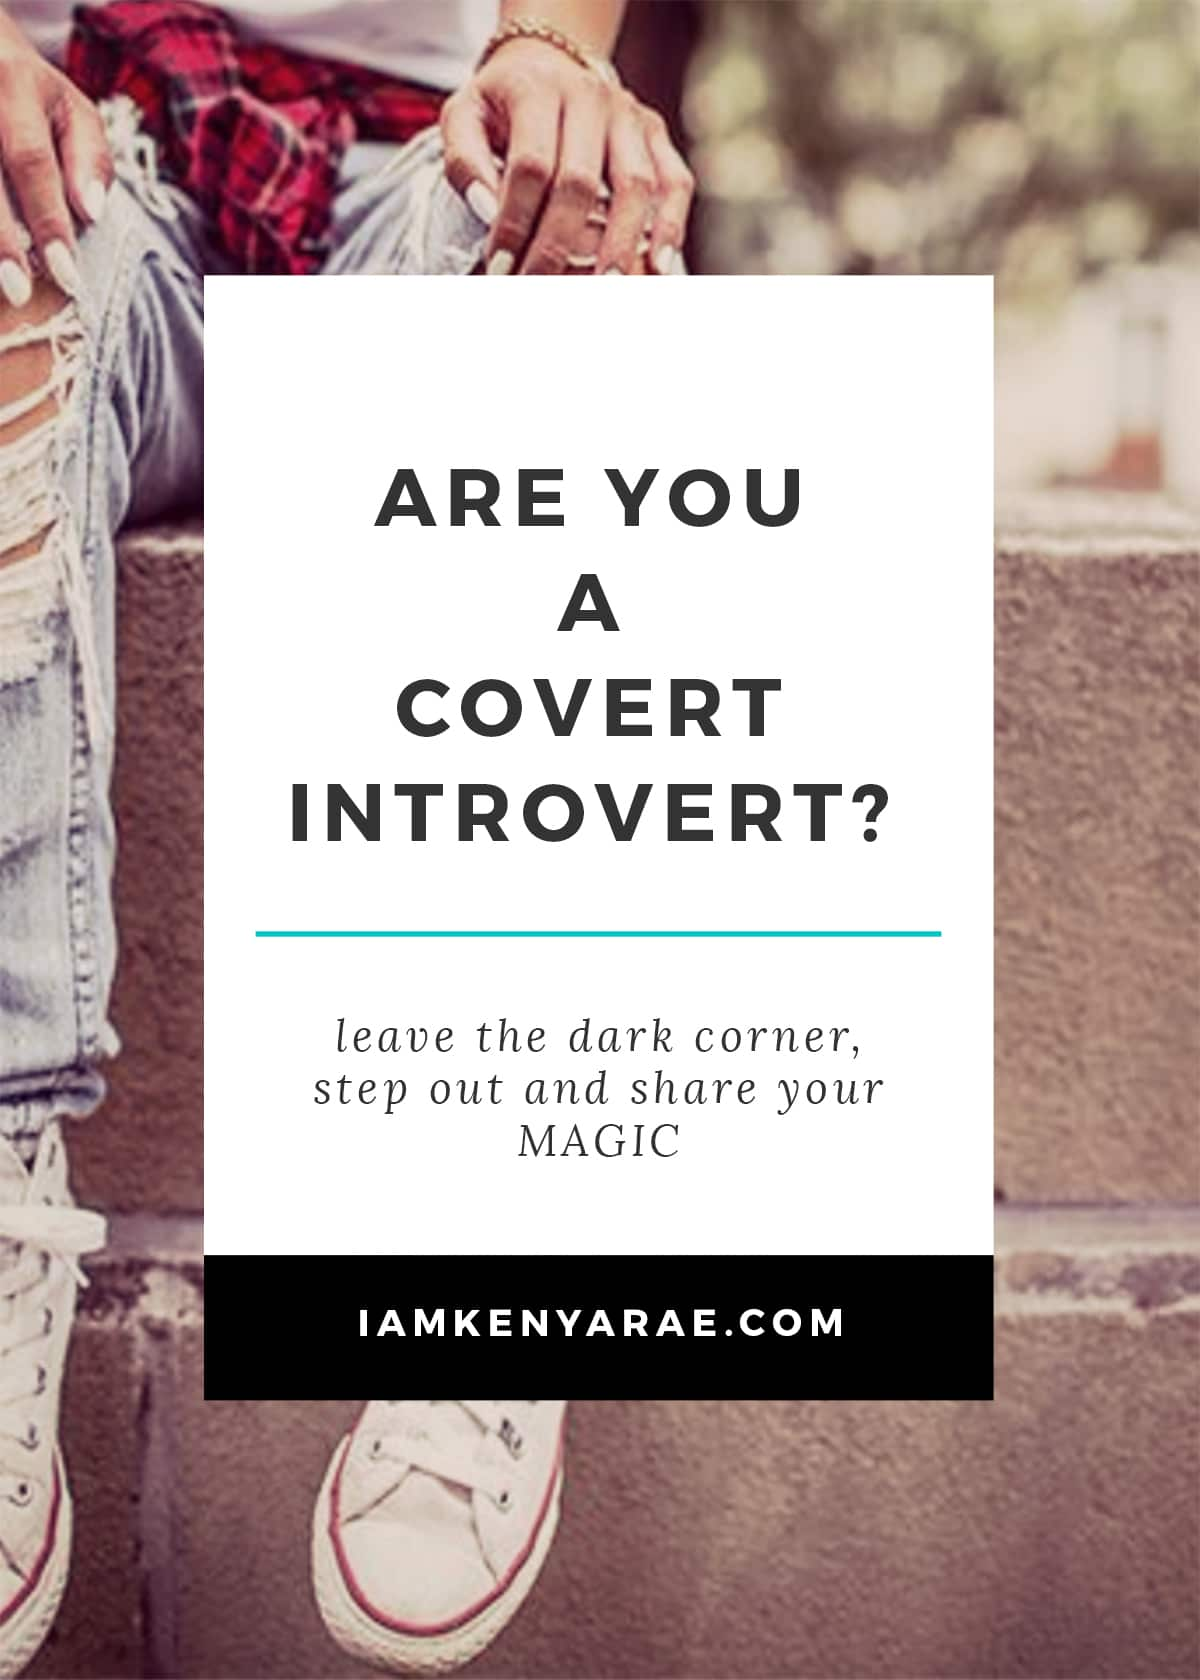 are you a covert introvert